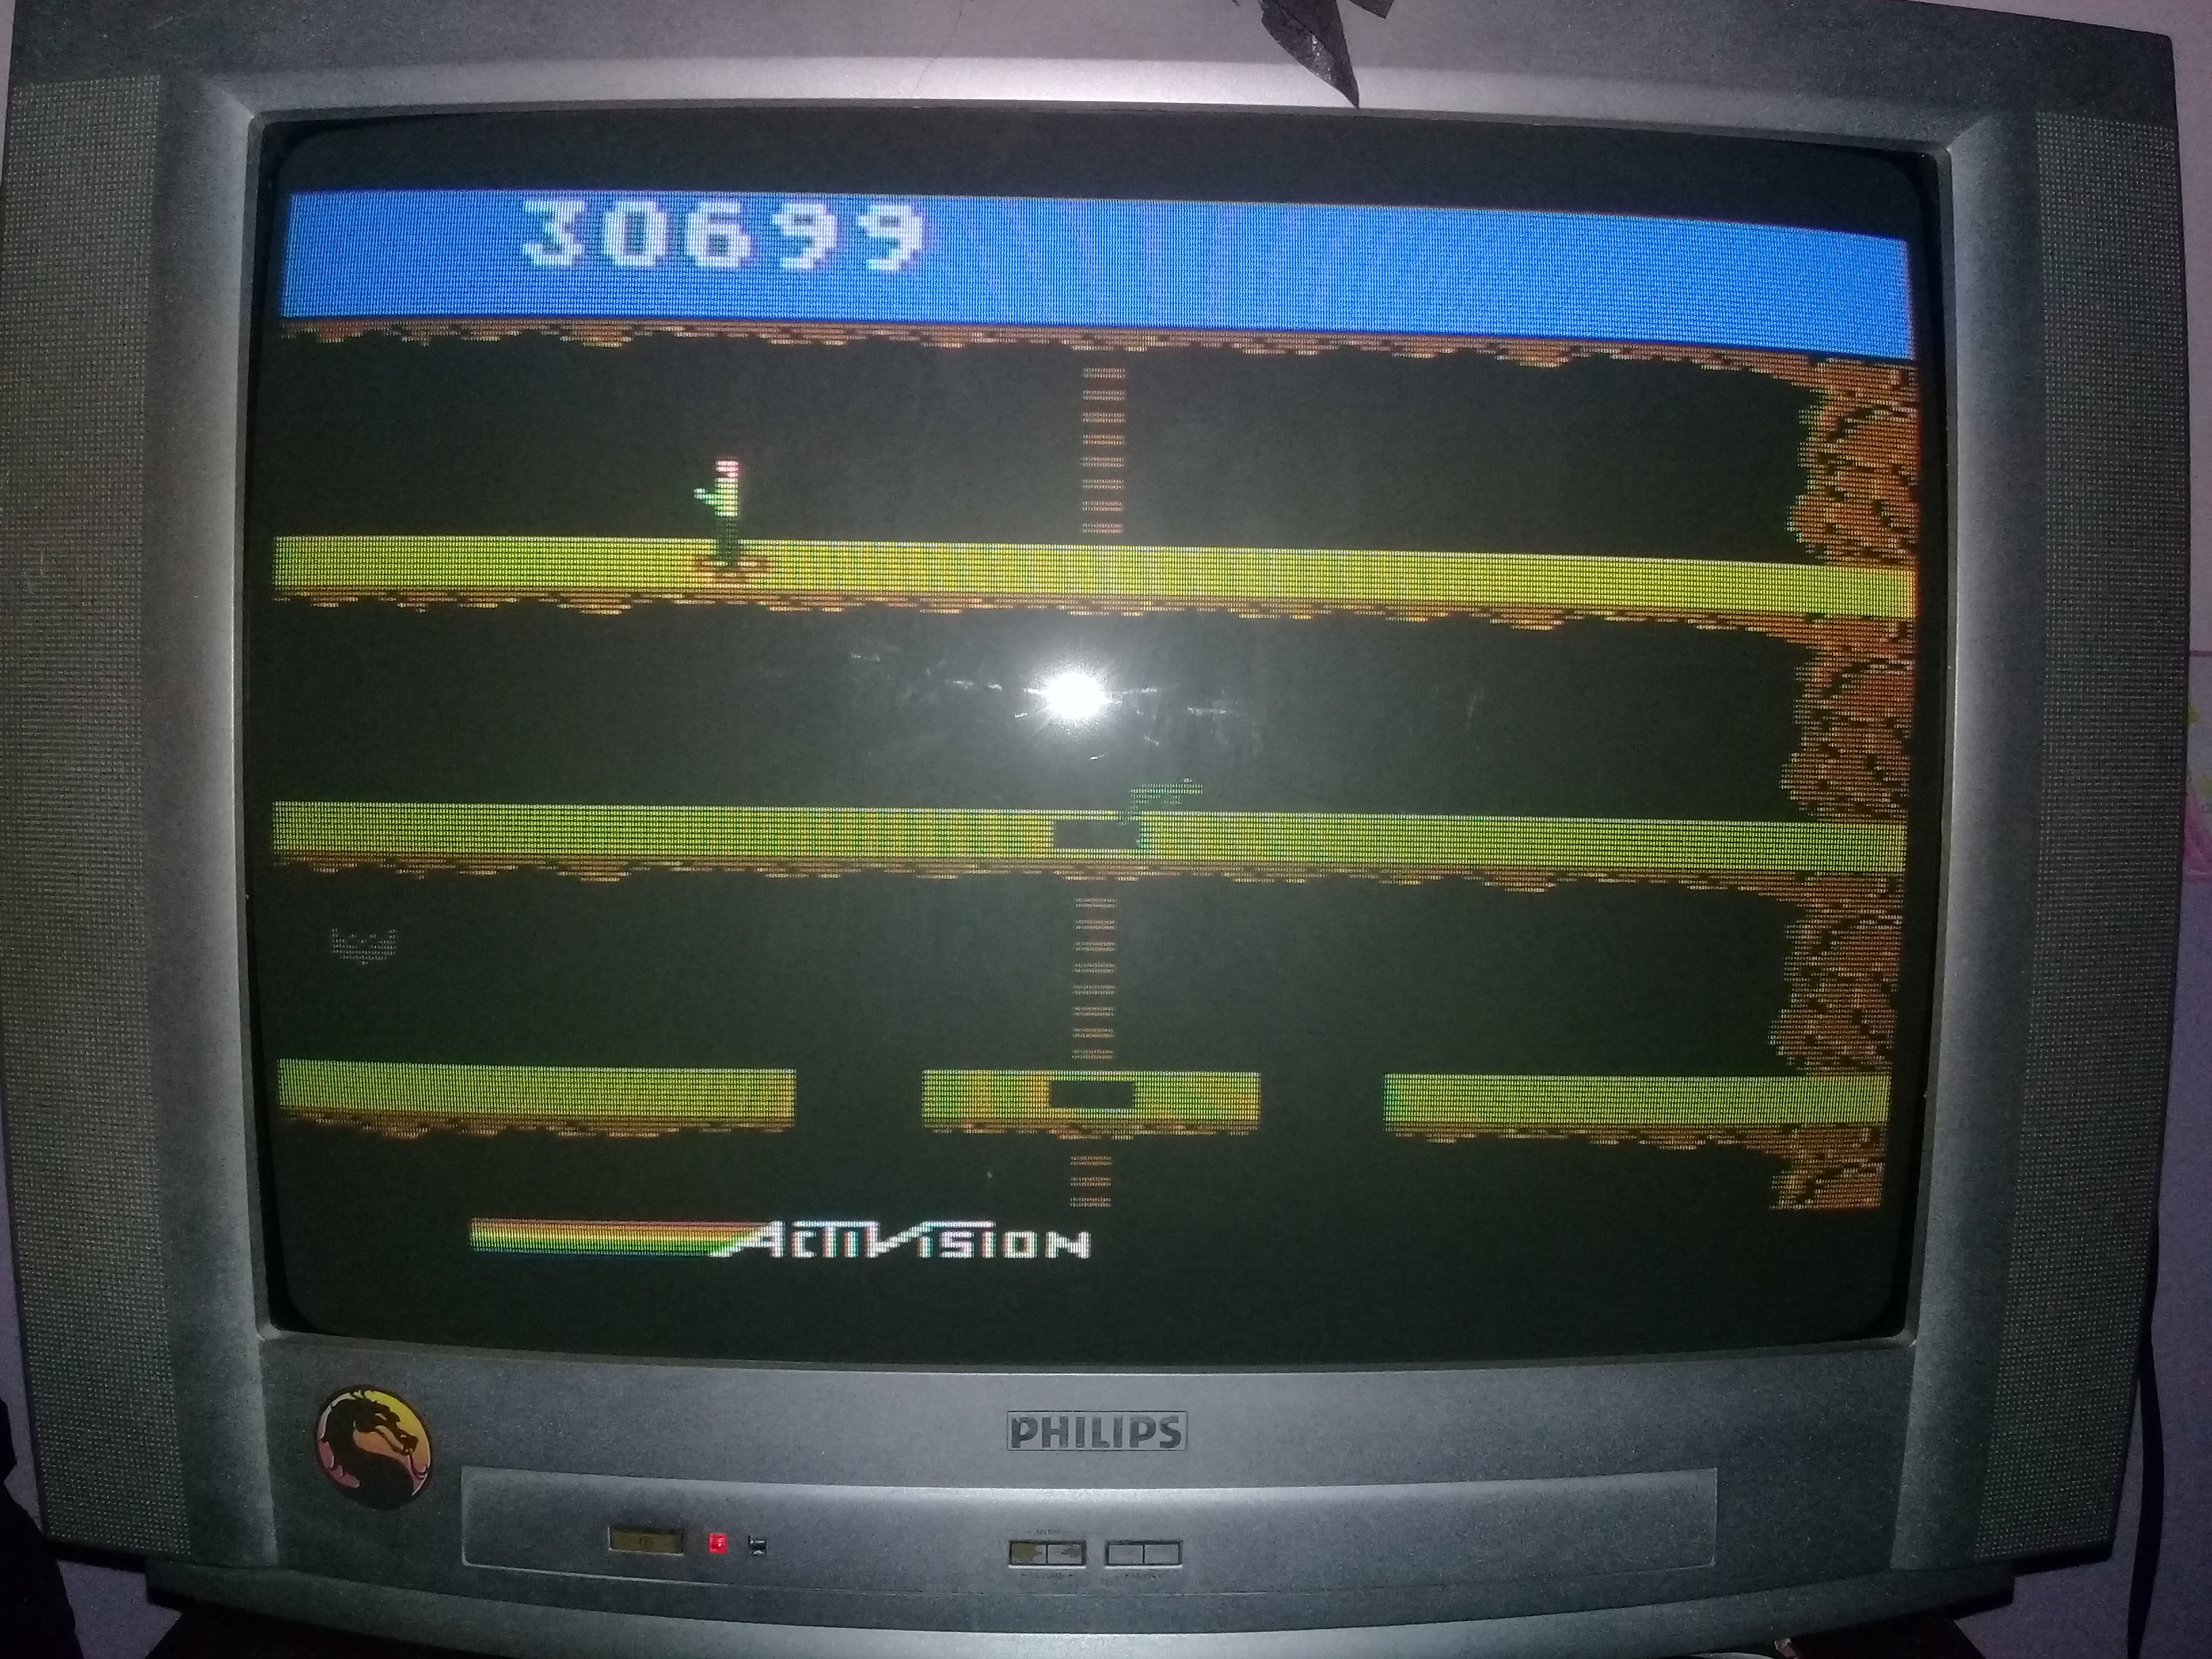 omargeddon: Pitfall II (Atari 400/800/XL/XE) 30,699 points on 2020-04-02 23:45:52